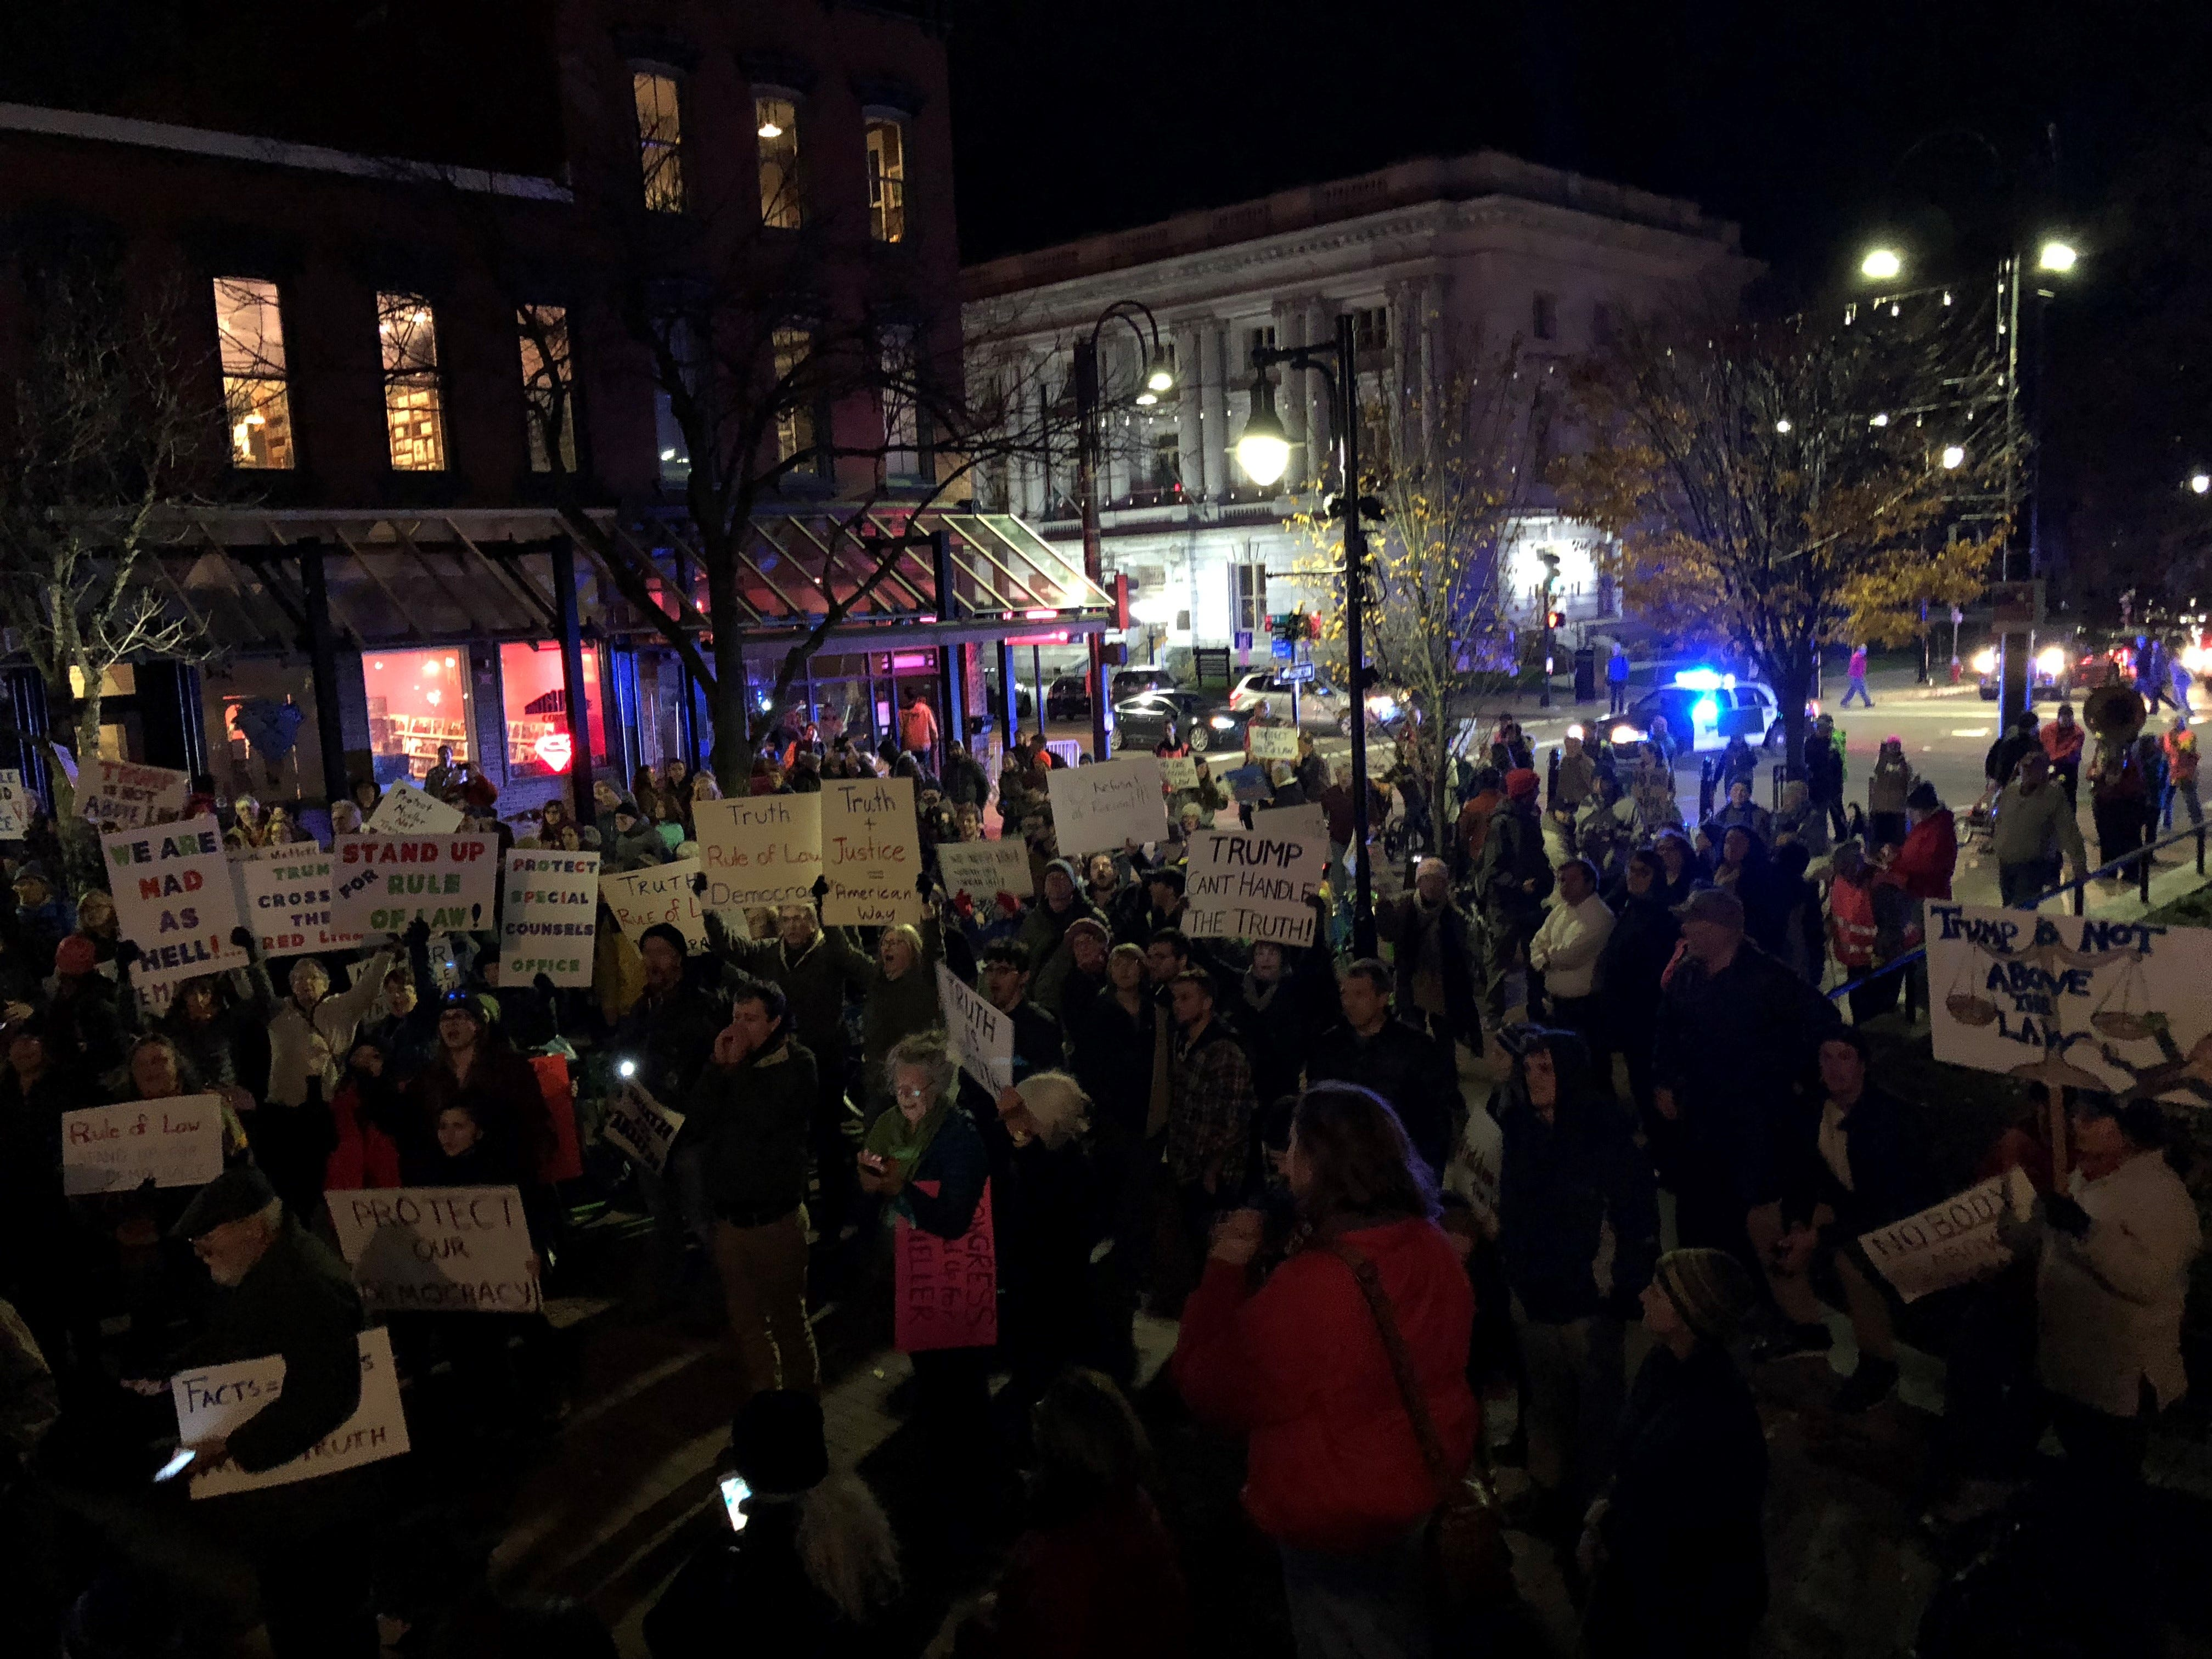 Protesters march on Nov. 8, 2018 in downtown Burlington to demand protection for Robert Mueller in the wake of President Donald Trump forcing out Attorney General Jeff Sessions